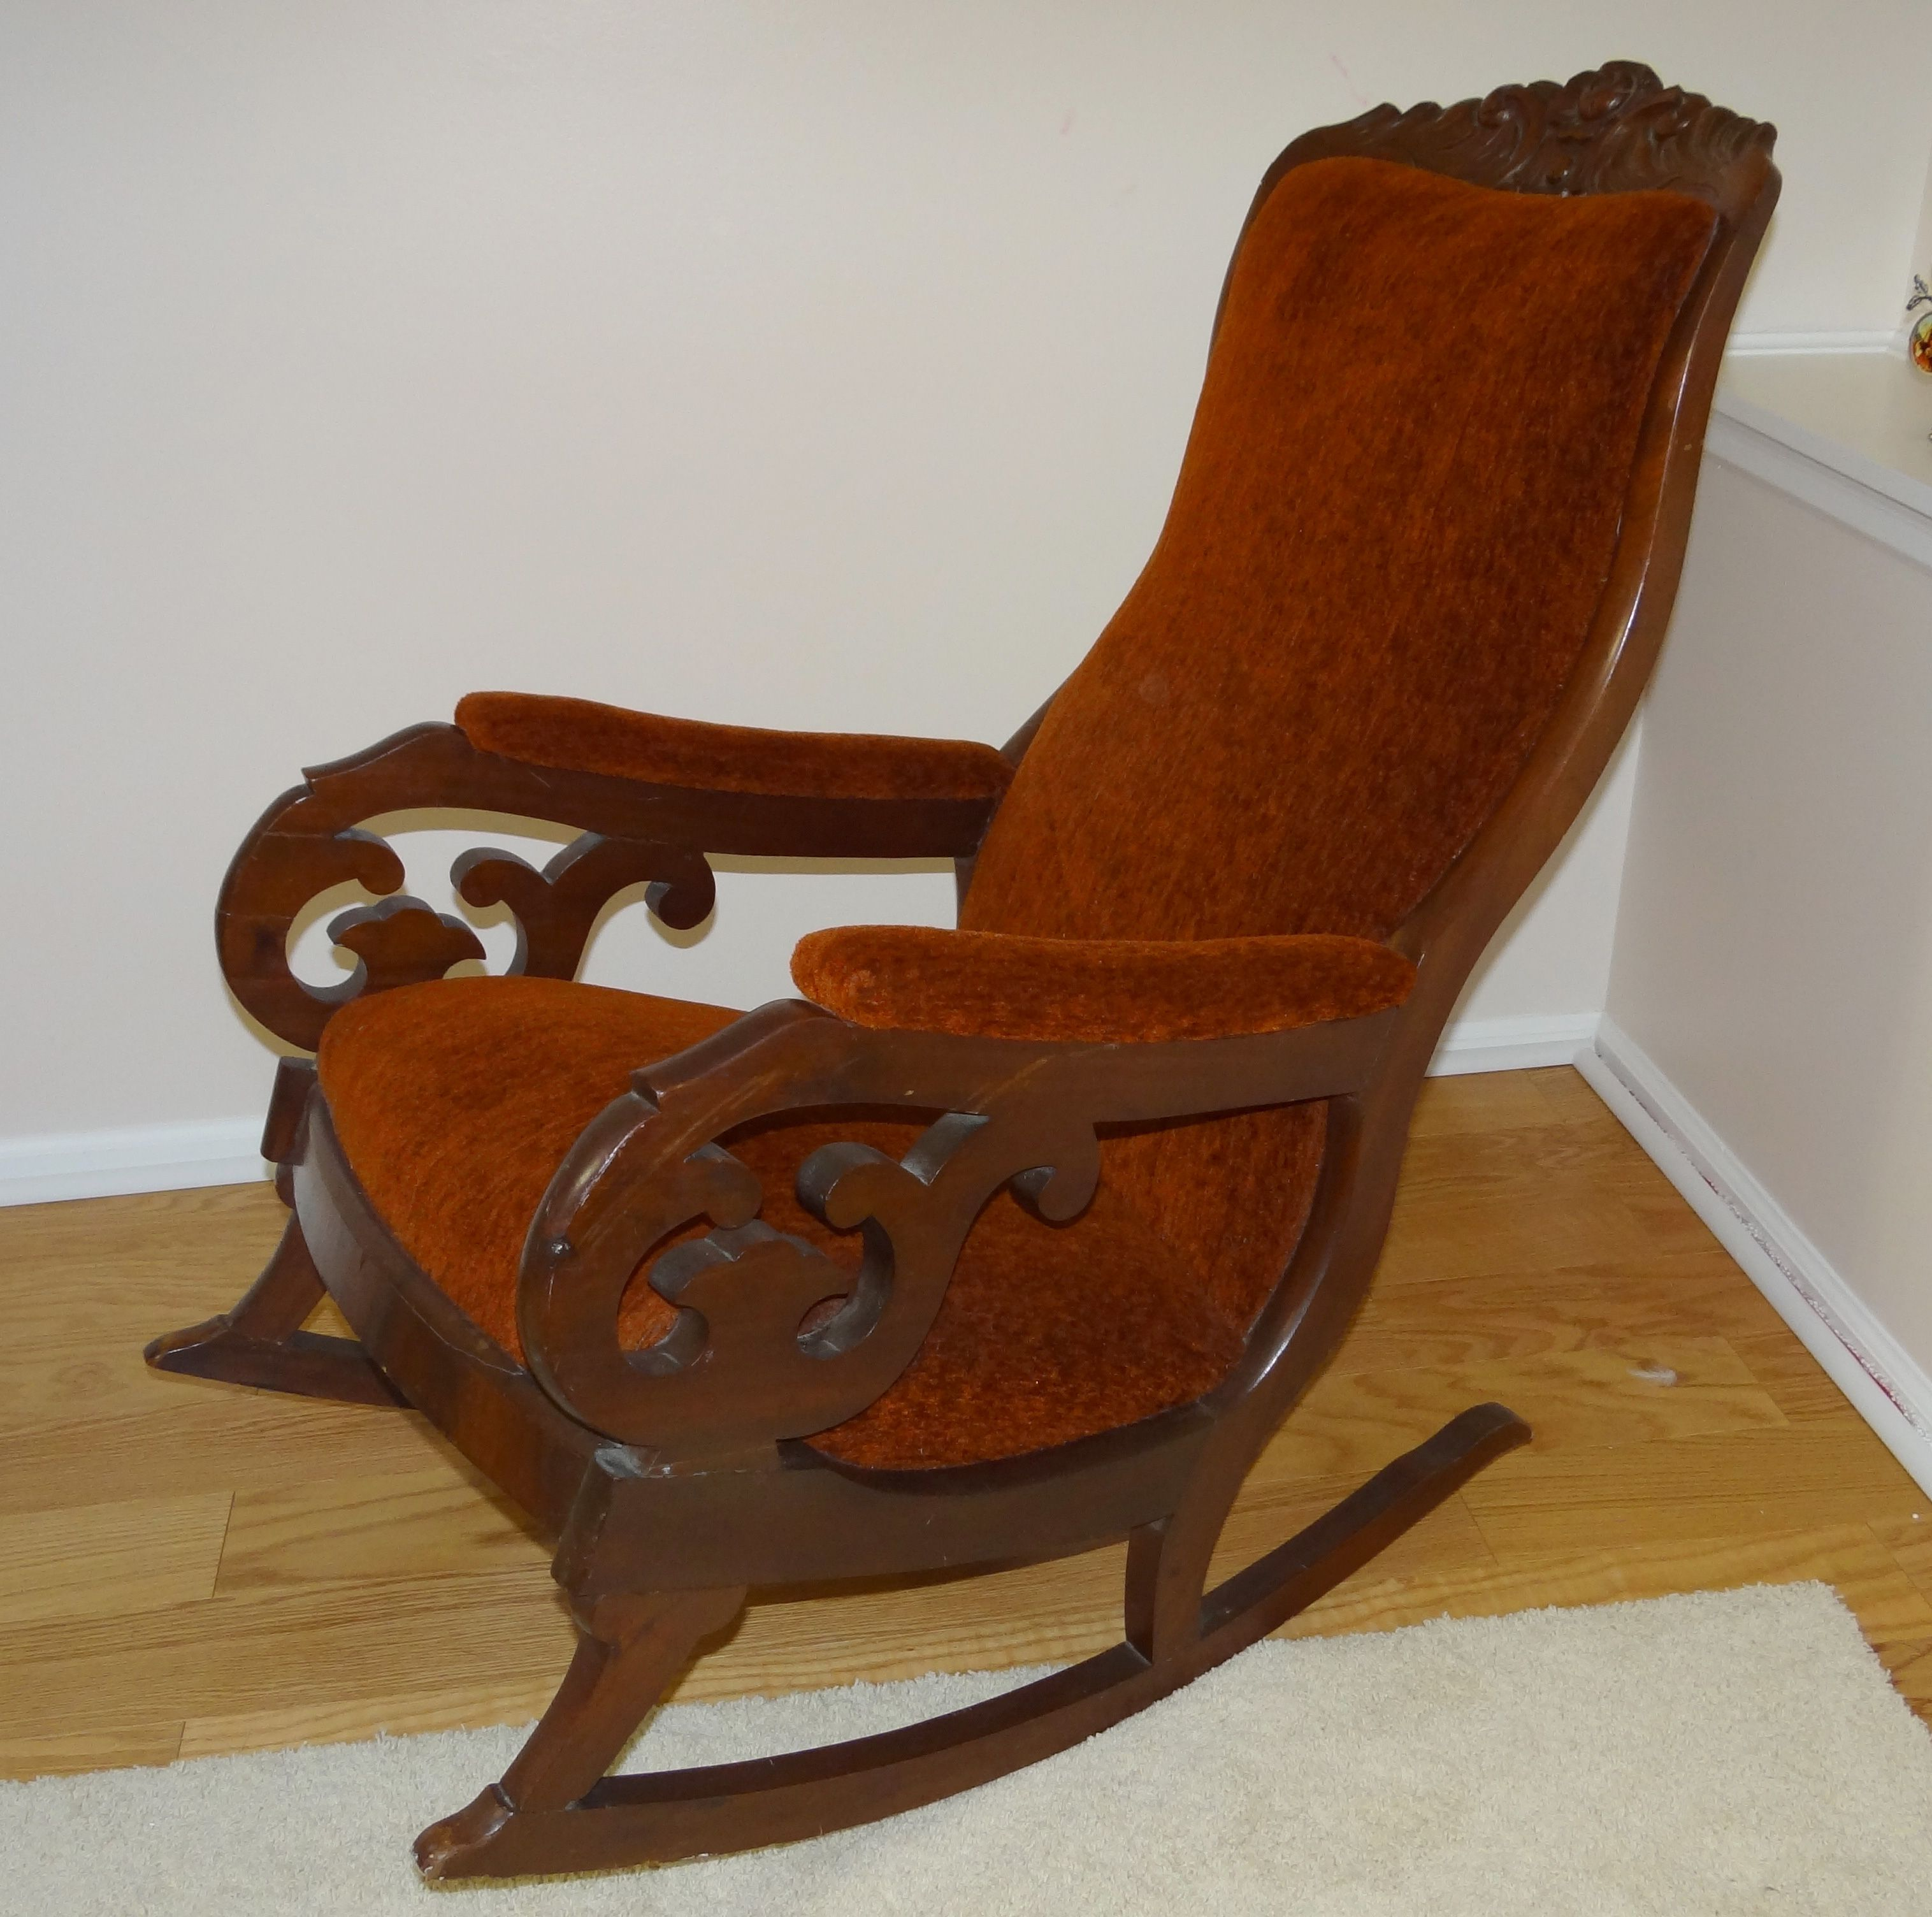 Find great deals on ebay for vintage rocking chair in antique chairs from the early 1900 s